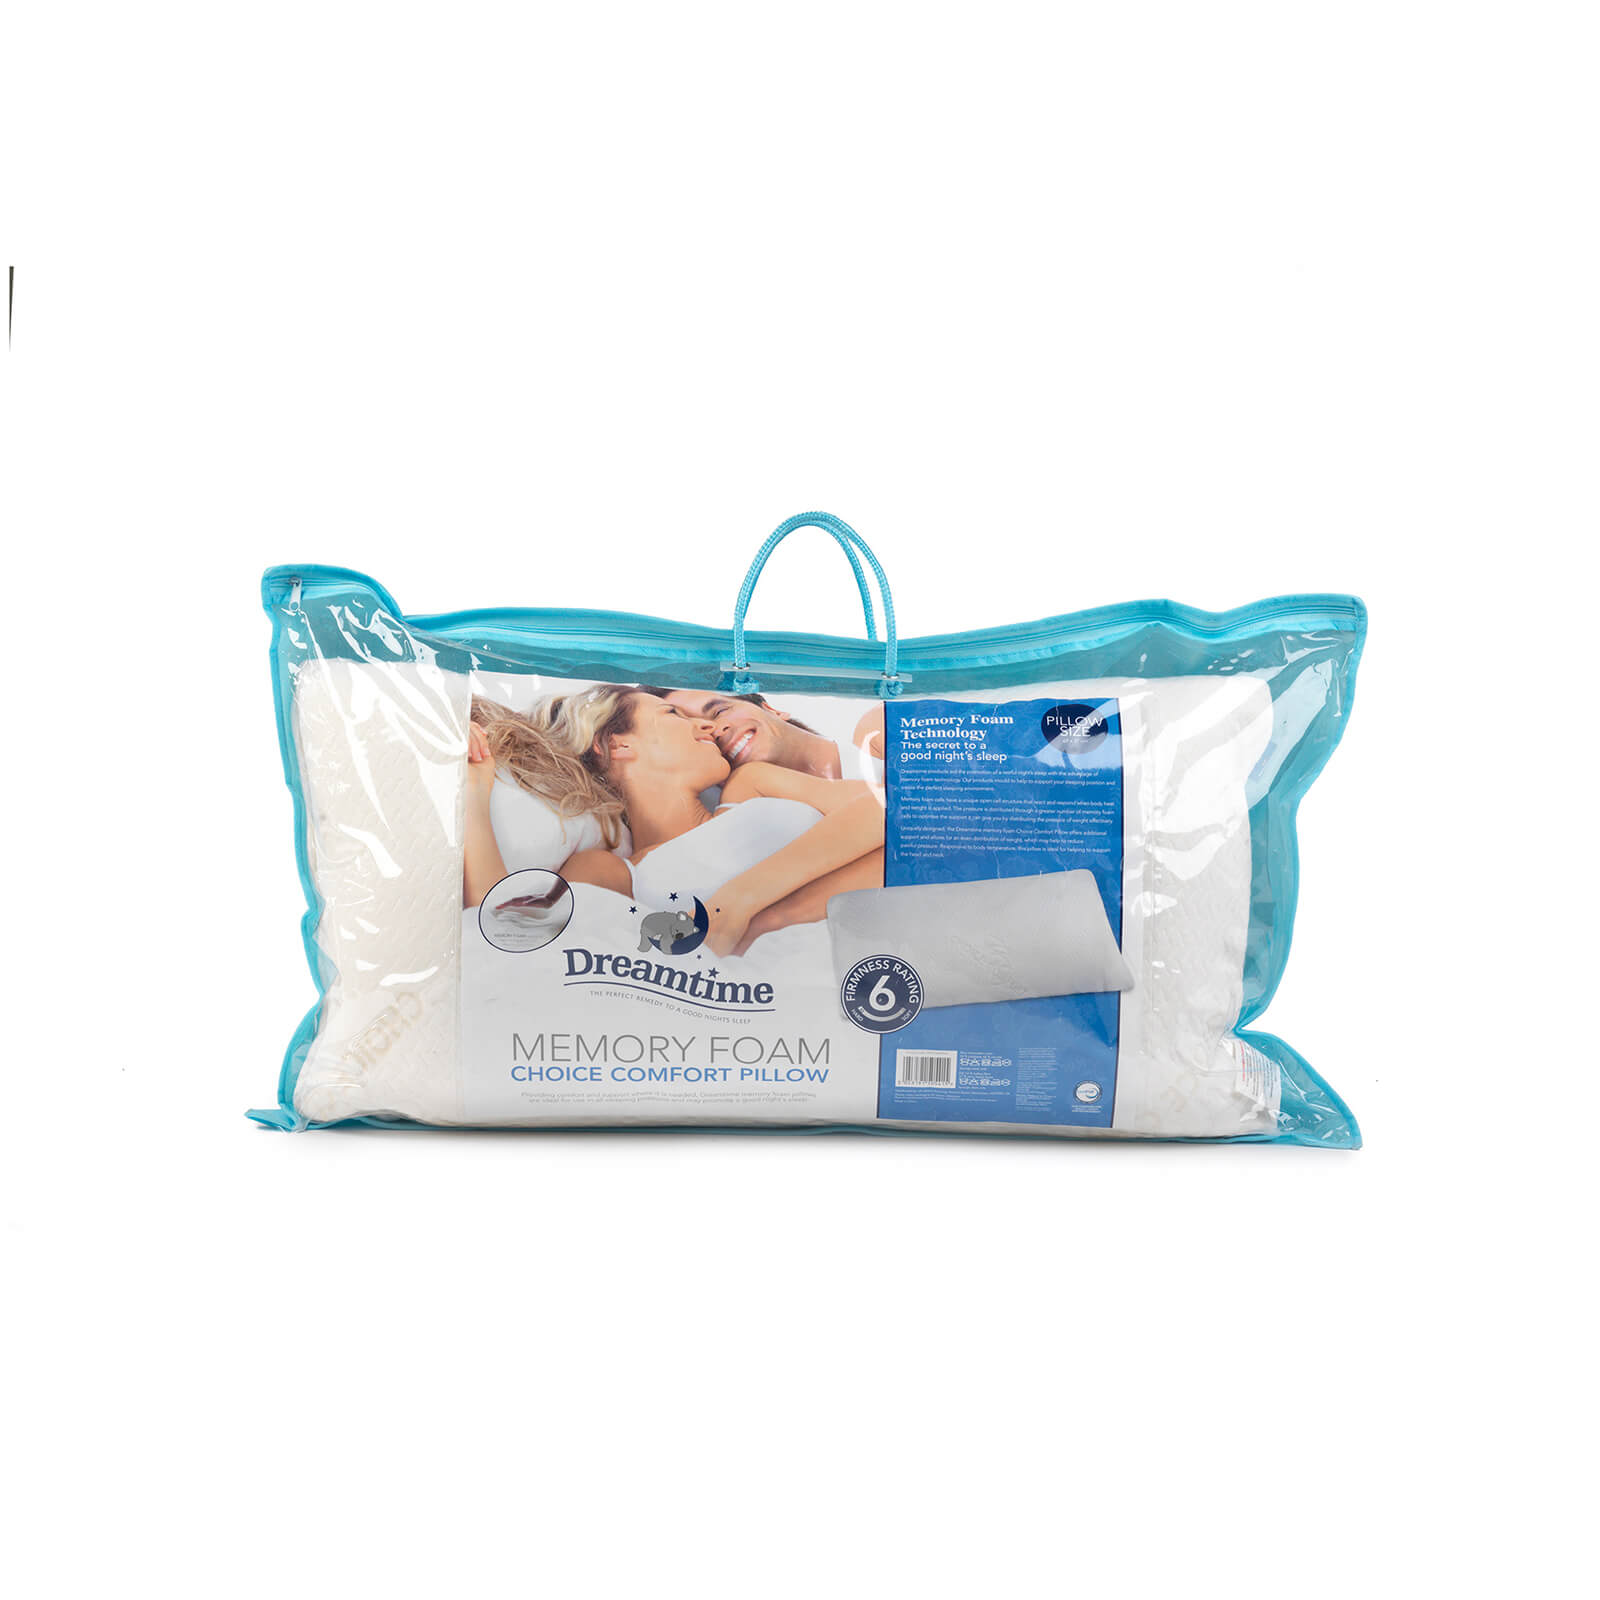 Dreamtime Choice Comfort Pillow - White